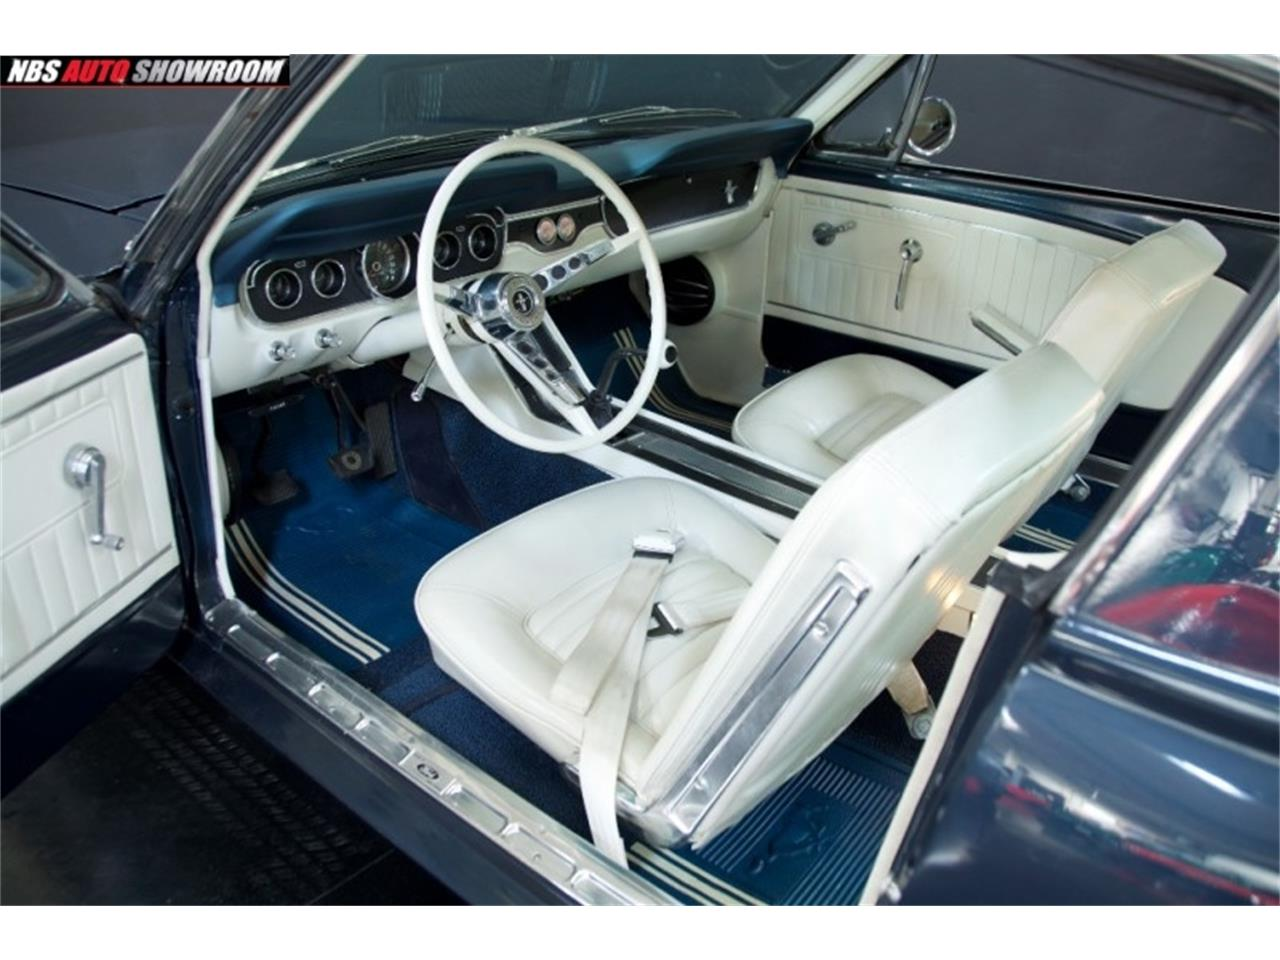 Large Picture of Classic 1965 Mustang - $37,074.00 Offered by NBS Auto Showroom - PHR5